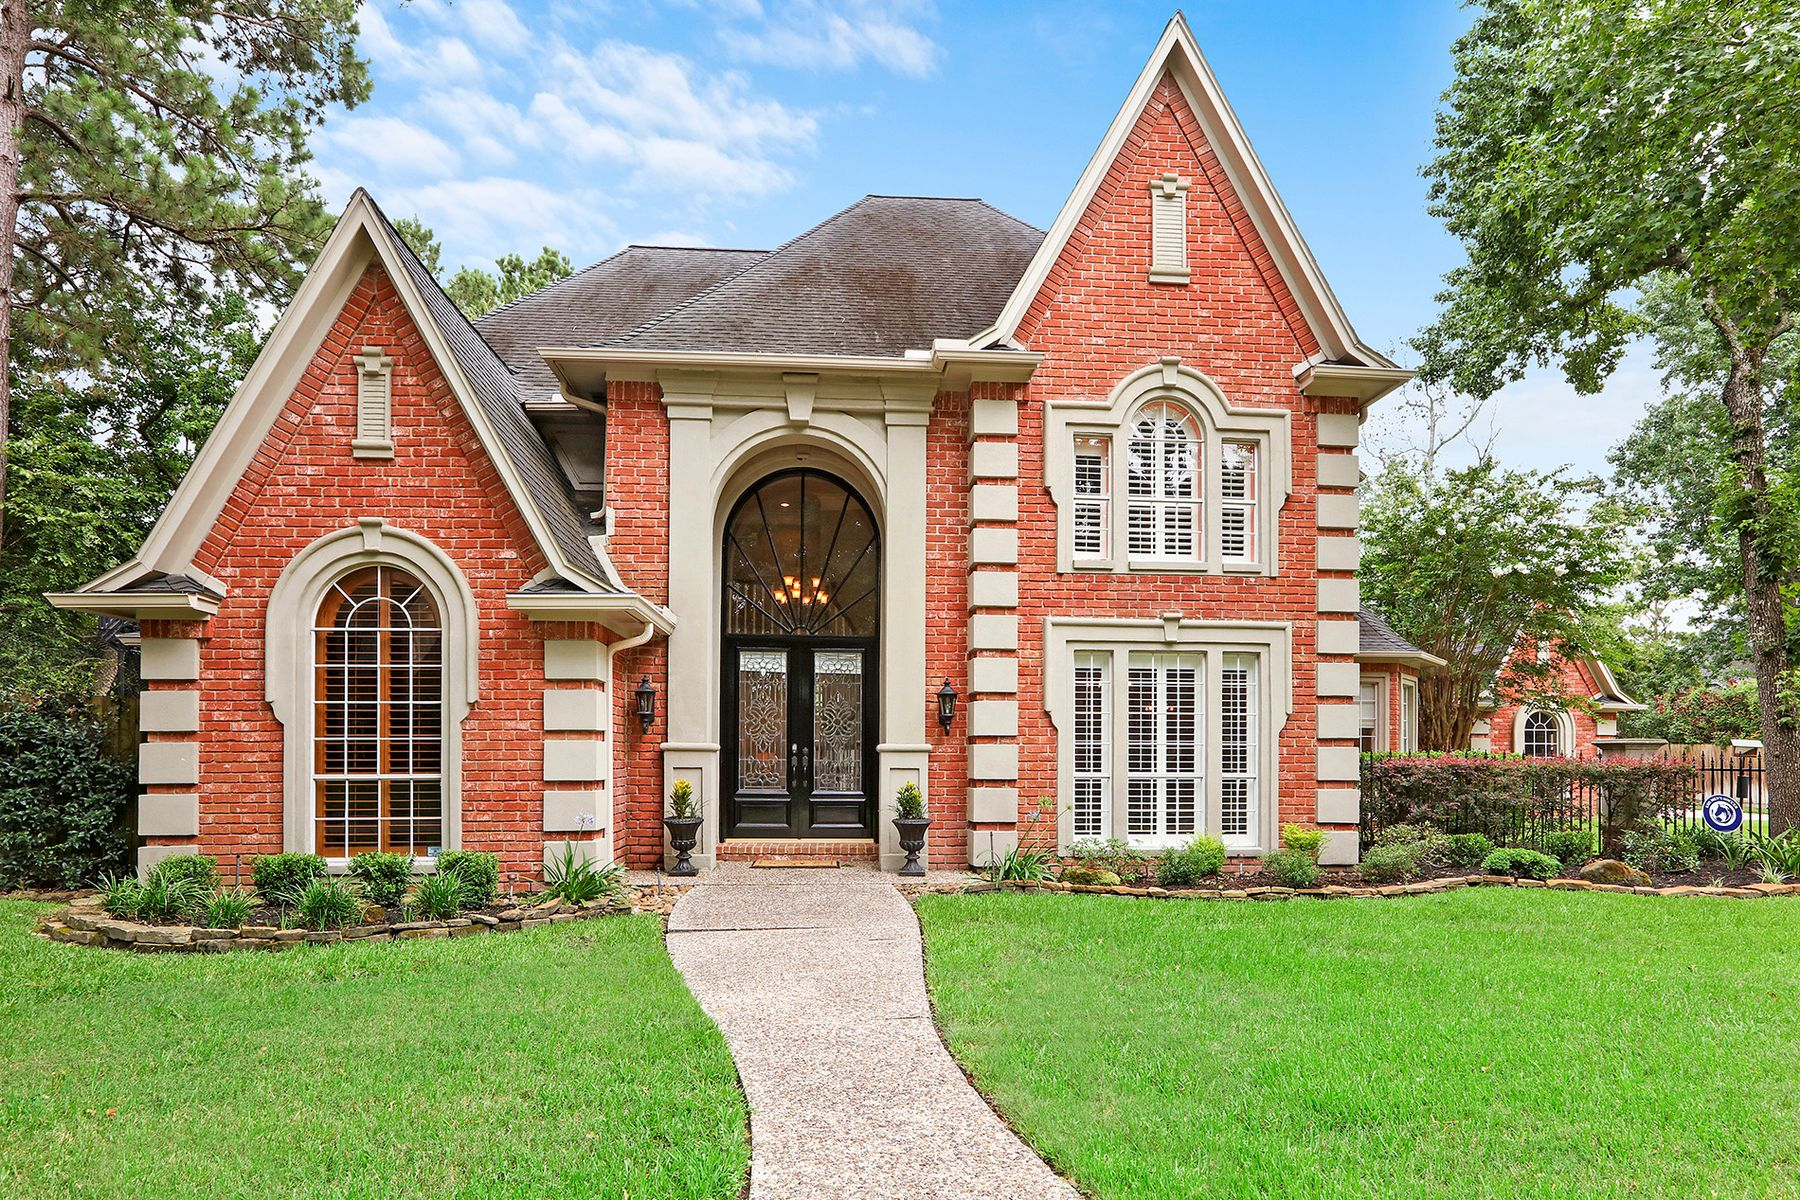 Single Family Homes for Sale at 2007 Hickory Park Drive Kingwood, Texas 77345 United States